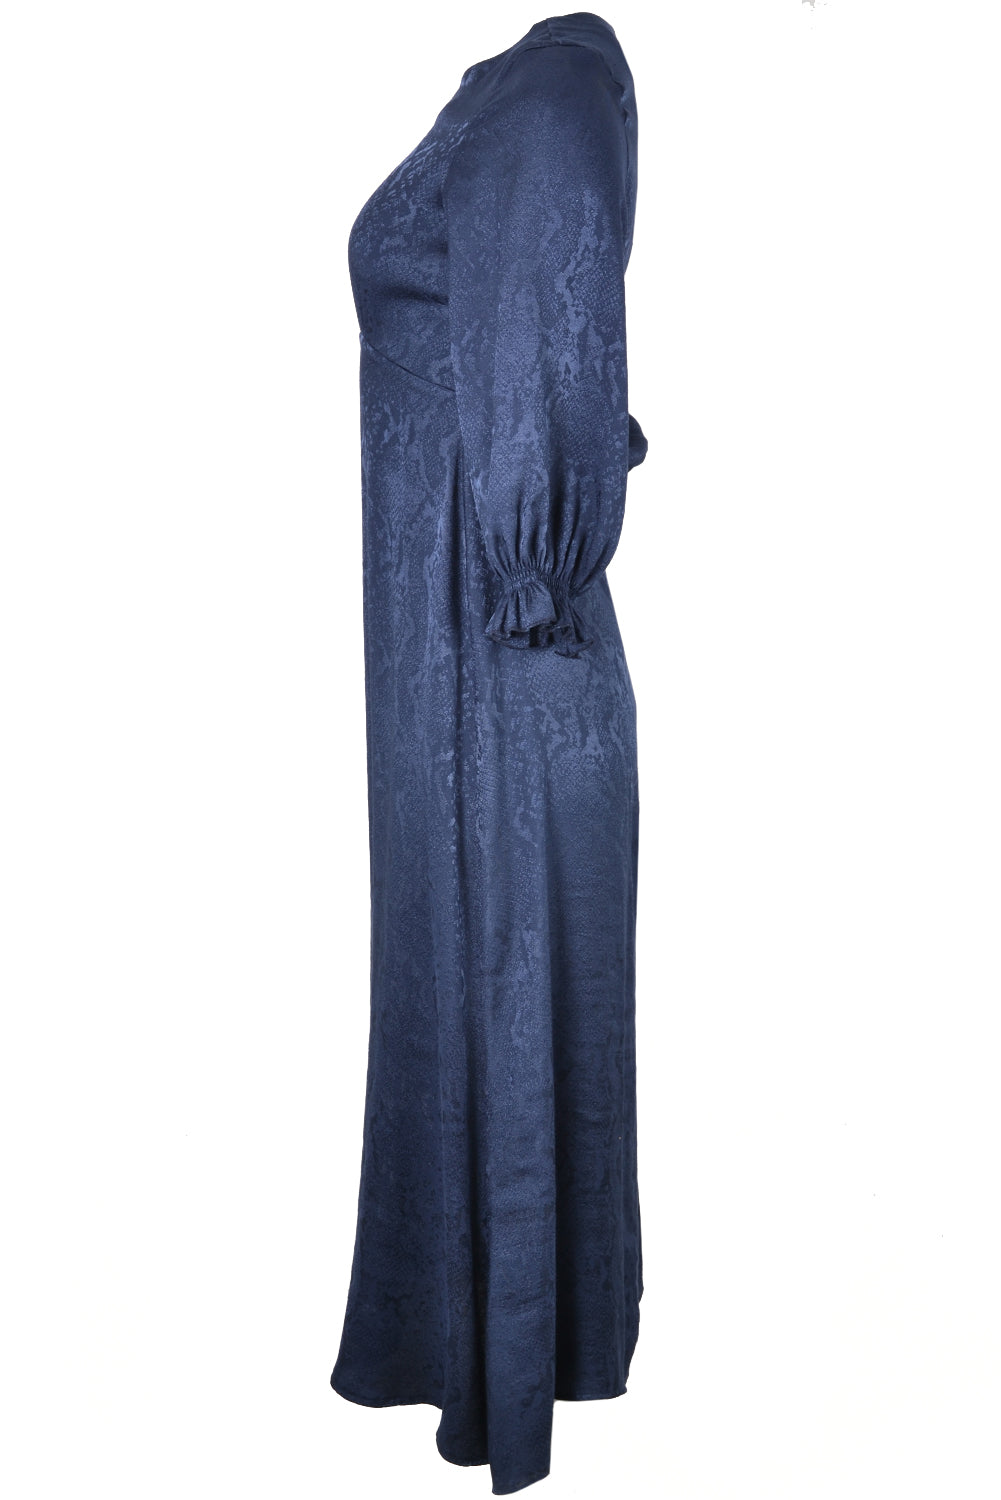 Vilagallo KARA Snake Print Maxi Dress Navy